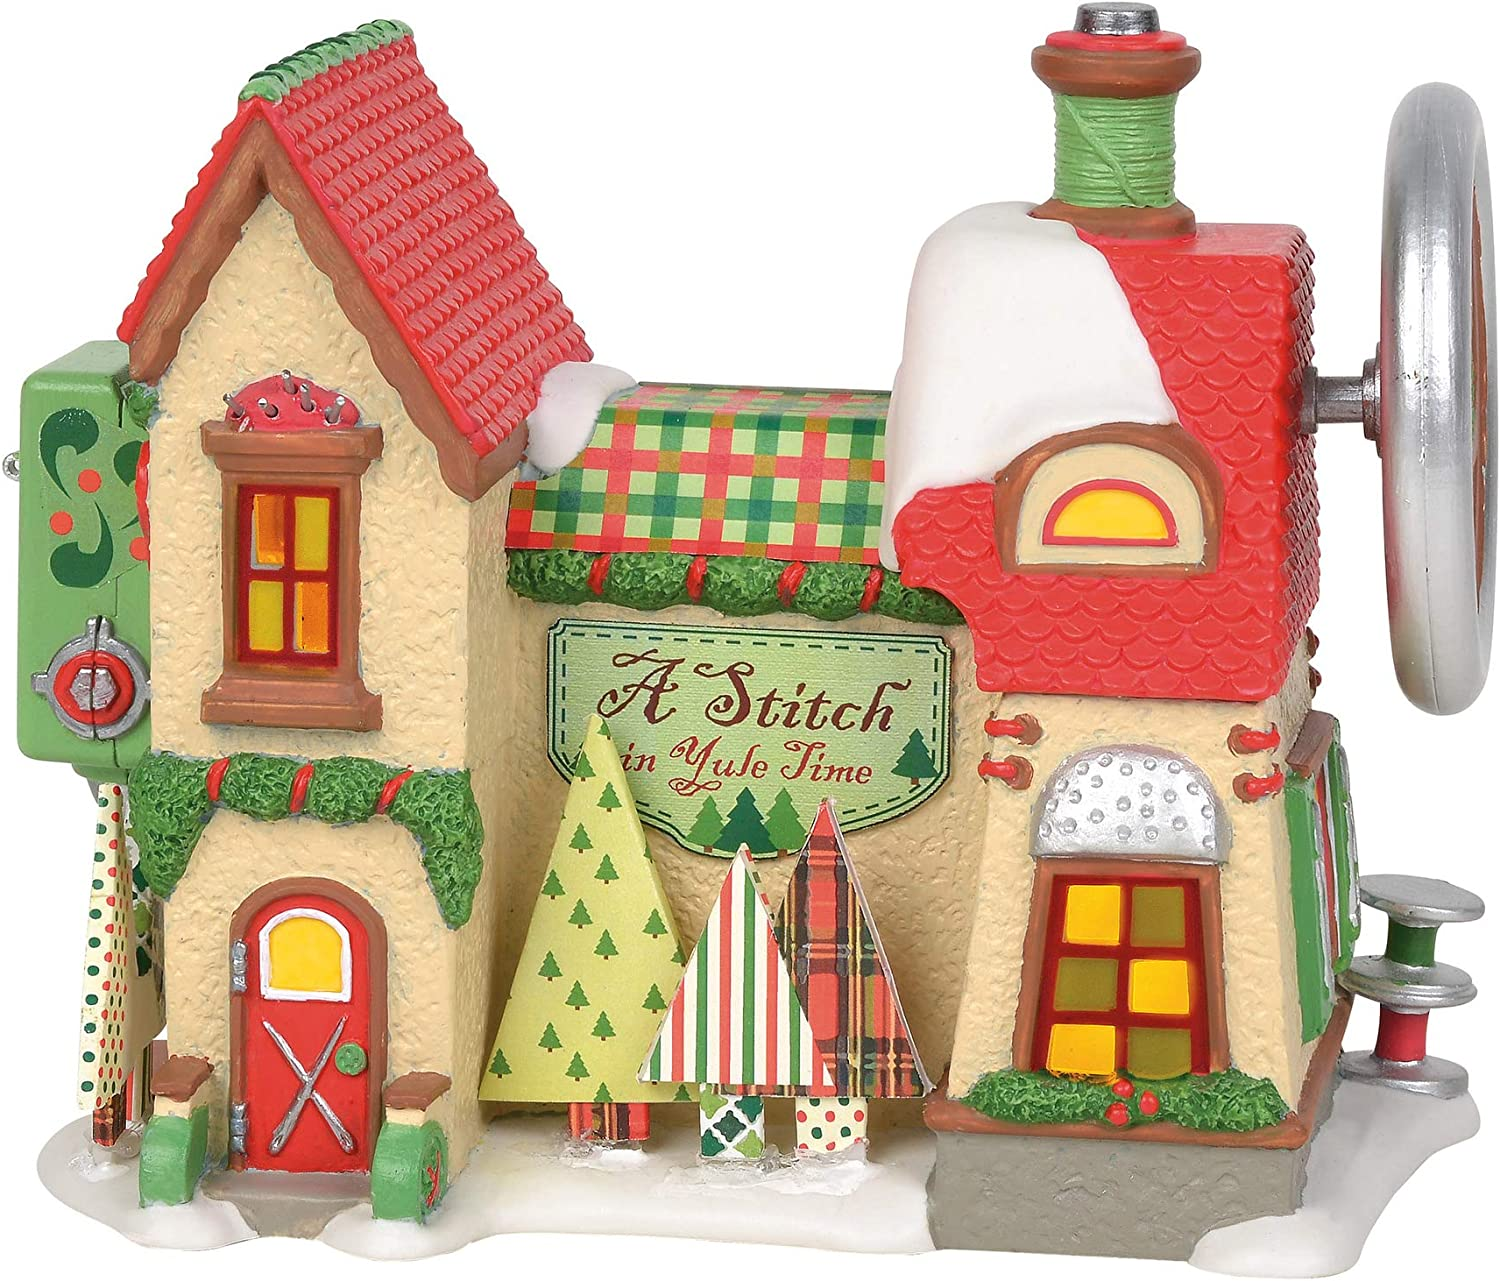 Department 56 North Superior Pole Village A in Animated Time Stitch Dealing full price reduction Yule